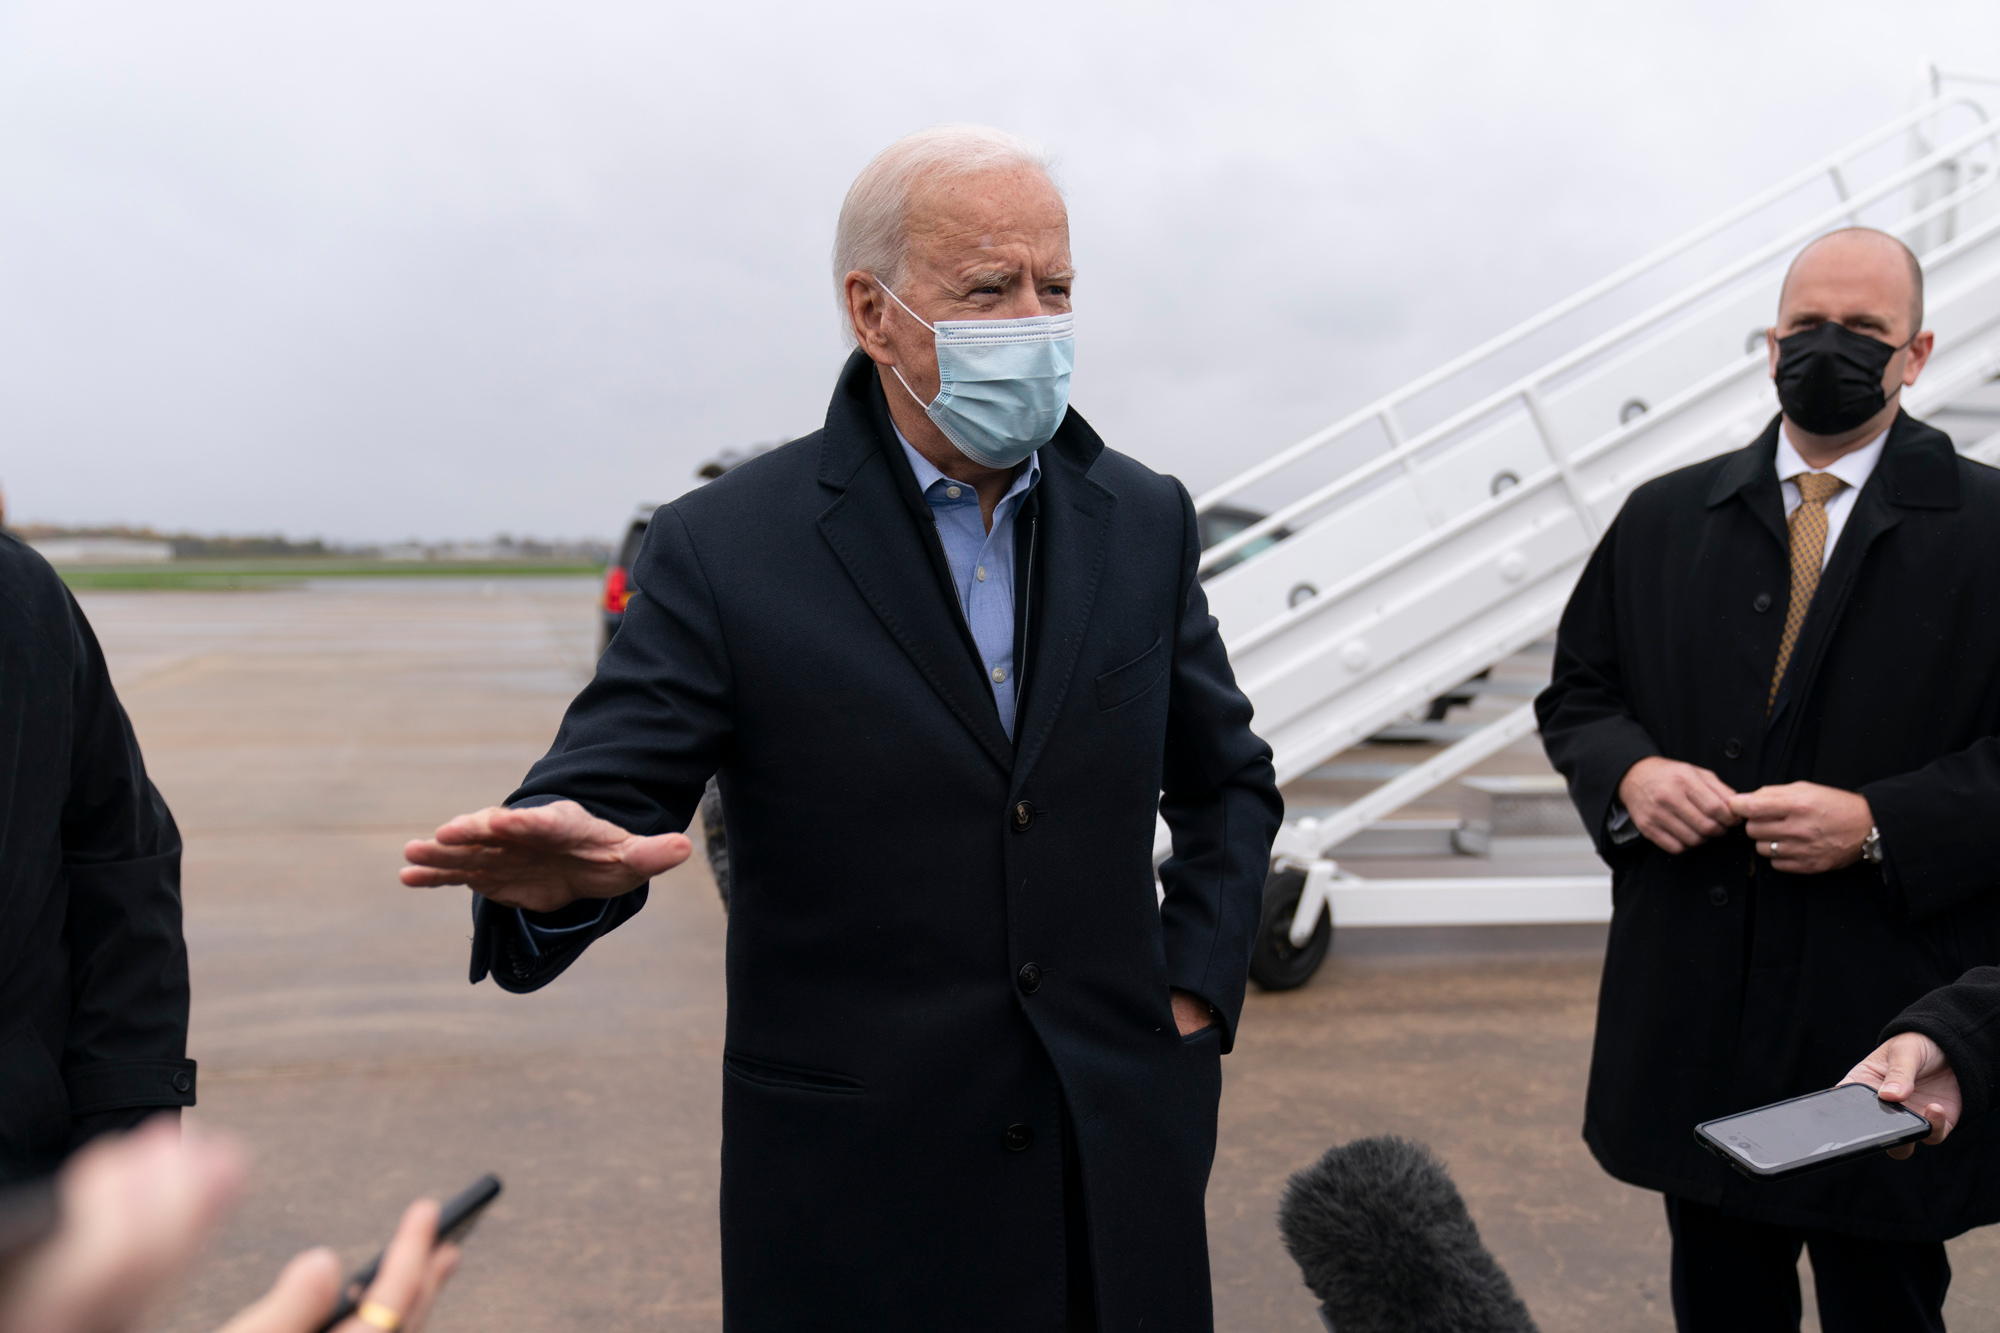 Democratic presidential candidate Joe Biden speaks to members of the media before boarding his campaign plane at New Castle Airport in New Castle, Delaware, on October 30.